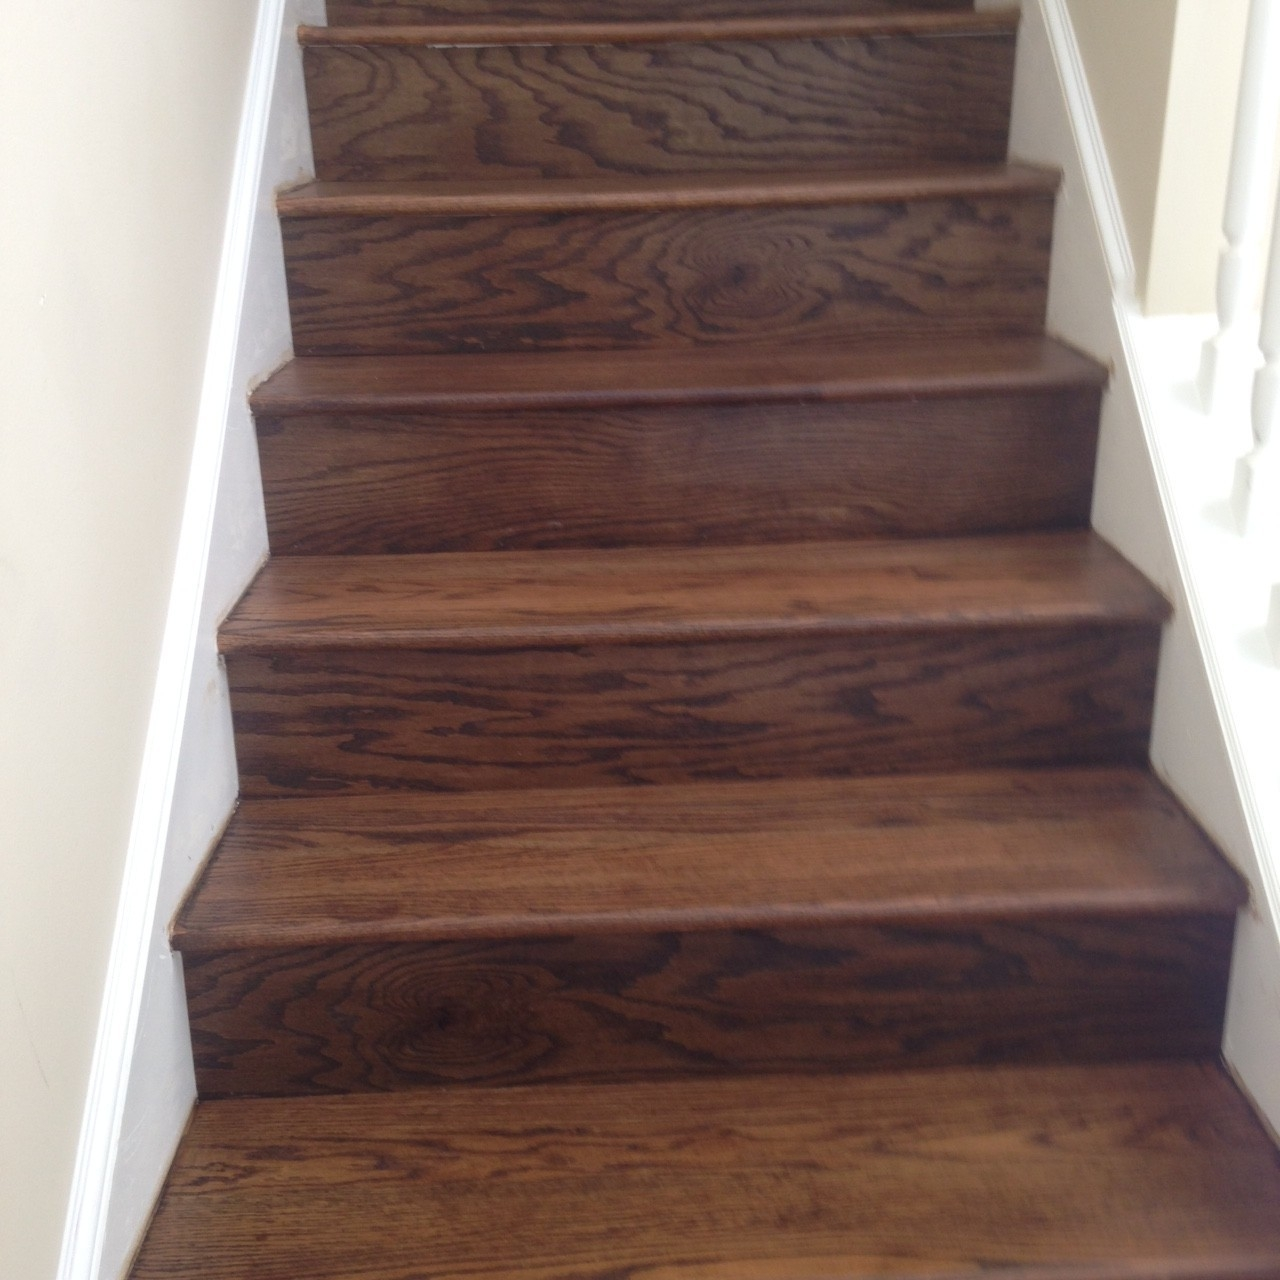 Professional Wooden Staircase Refinishing Jacksonville Florida   Sanding And Staining Stairs   Pine   Stair Railing   Wood Stairs   Stair Case   Stair Risers